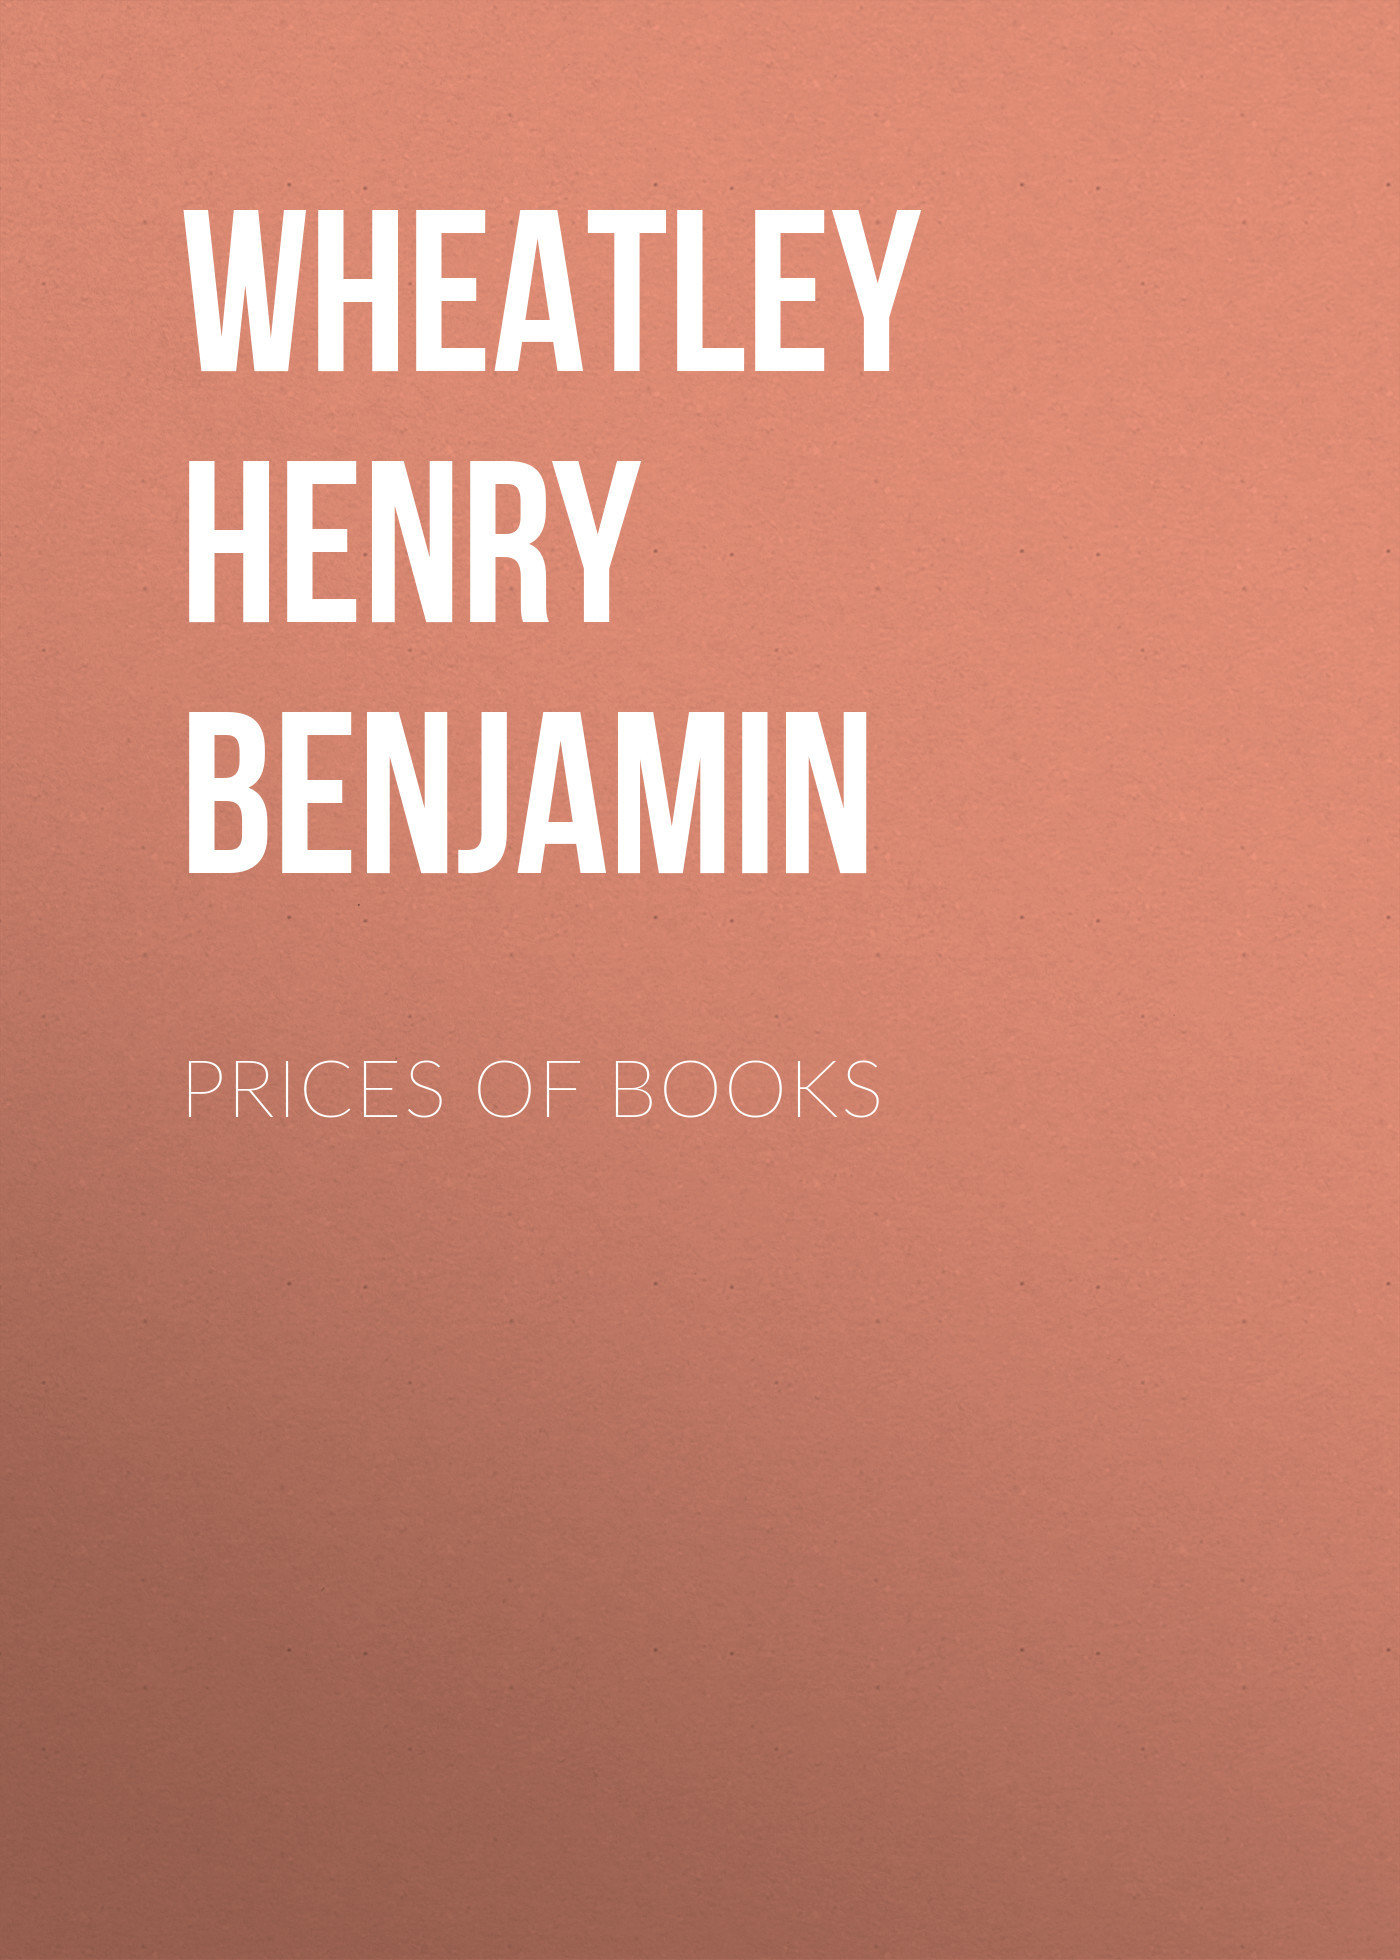 Wheatley Henry Benjamin Prices of Books wheatley henry benjamin prices of books